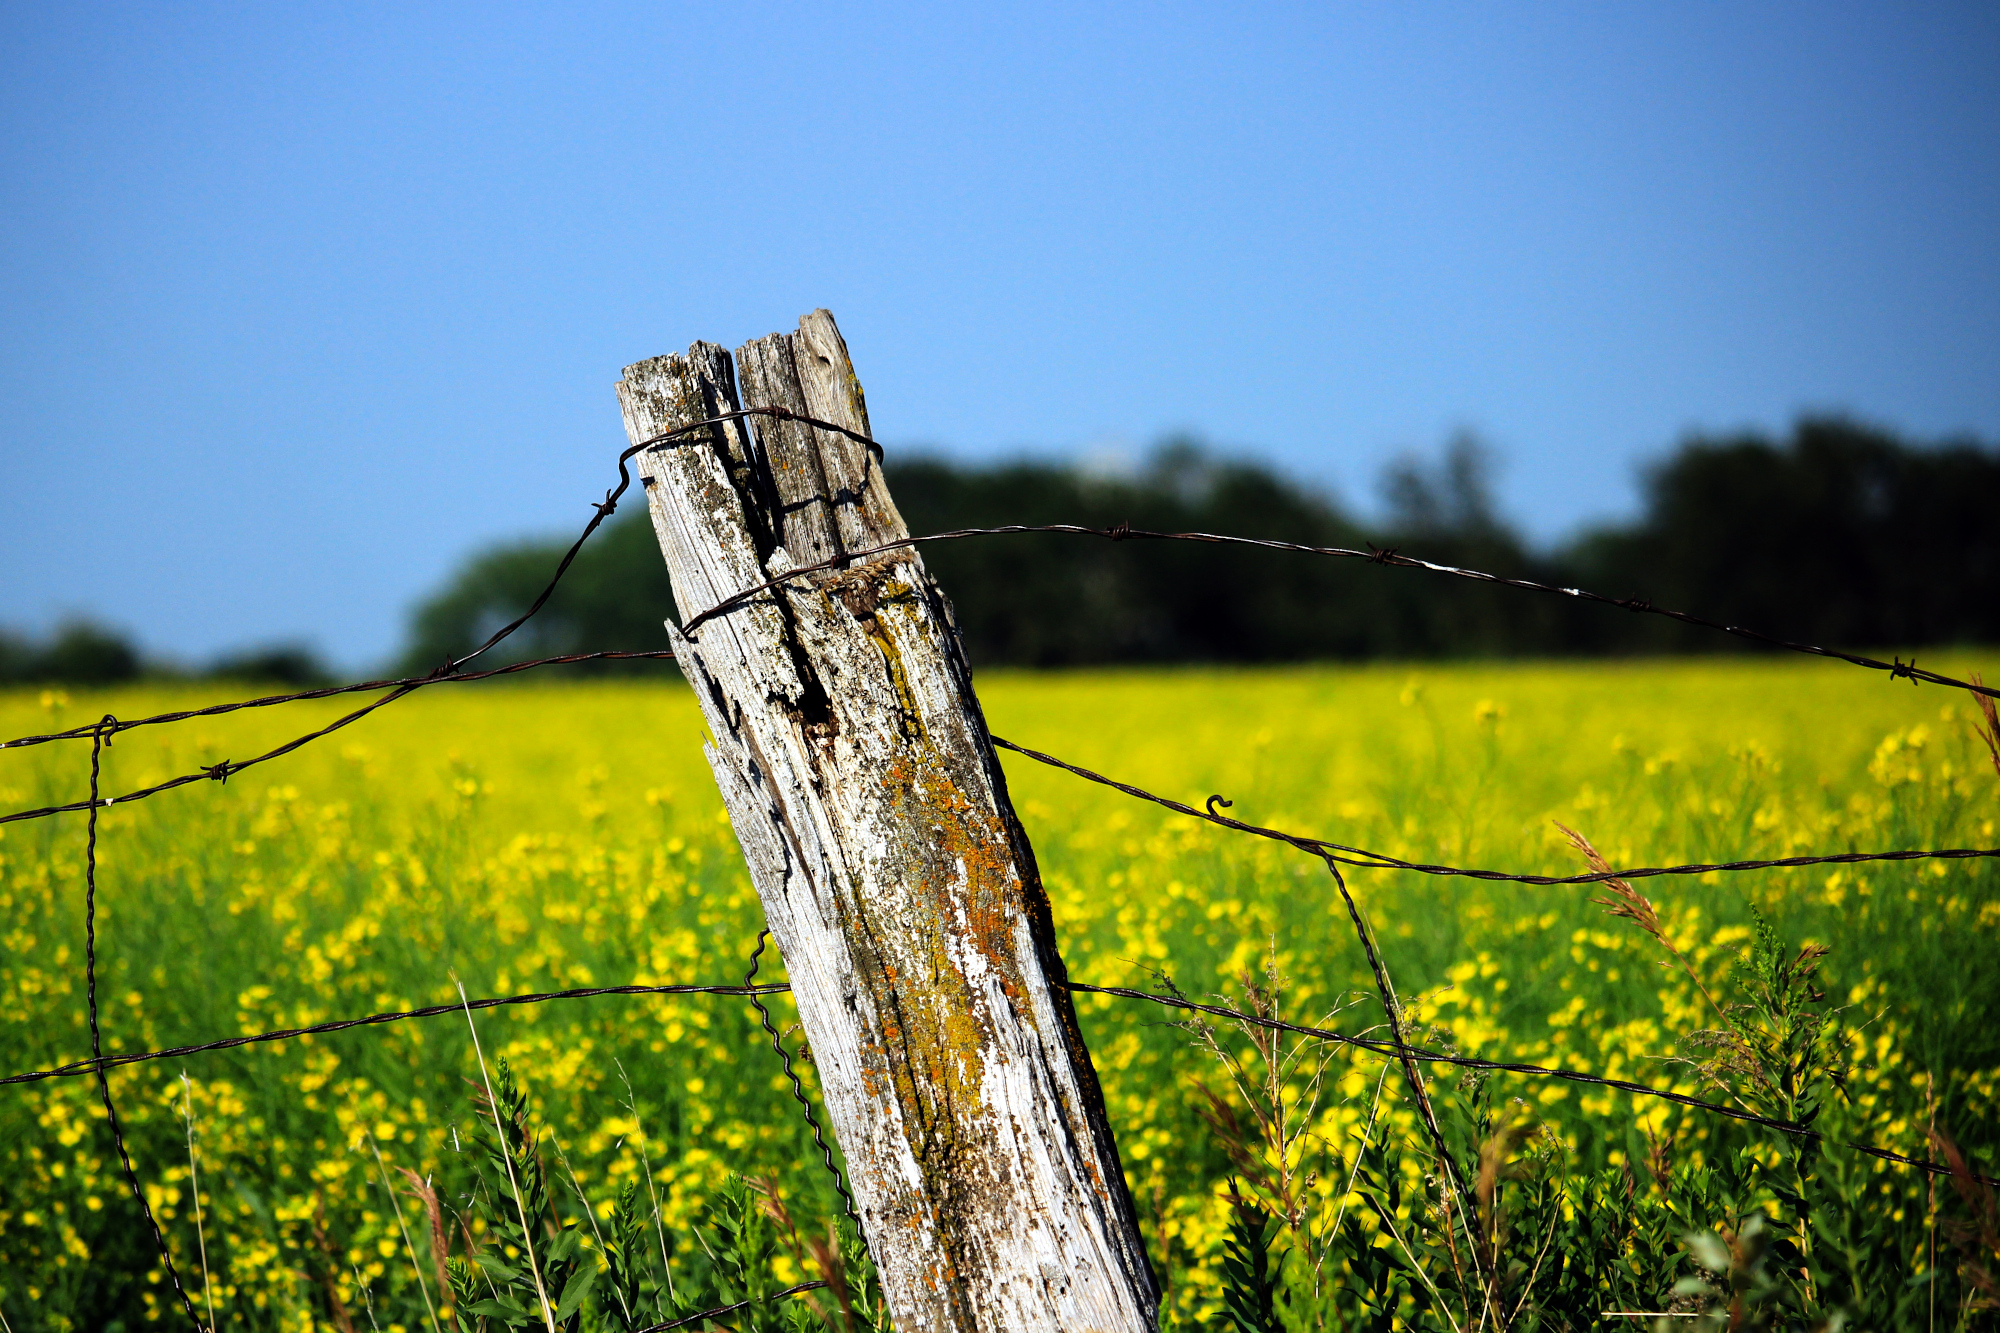 Fencepost in the foreground; canola in the background